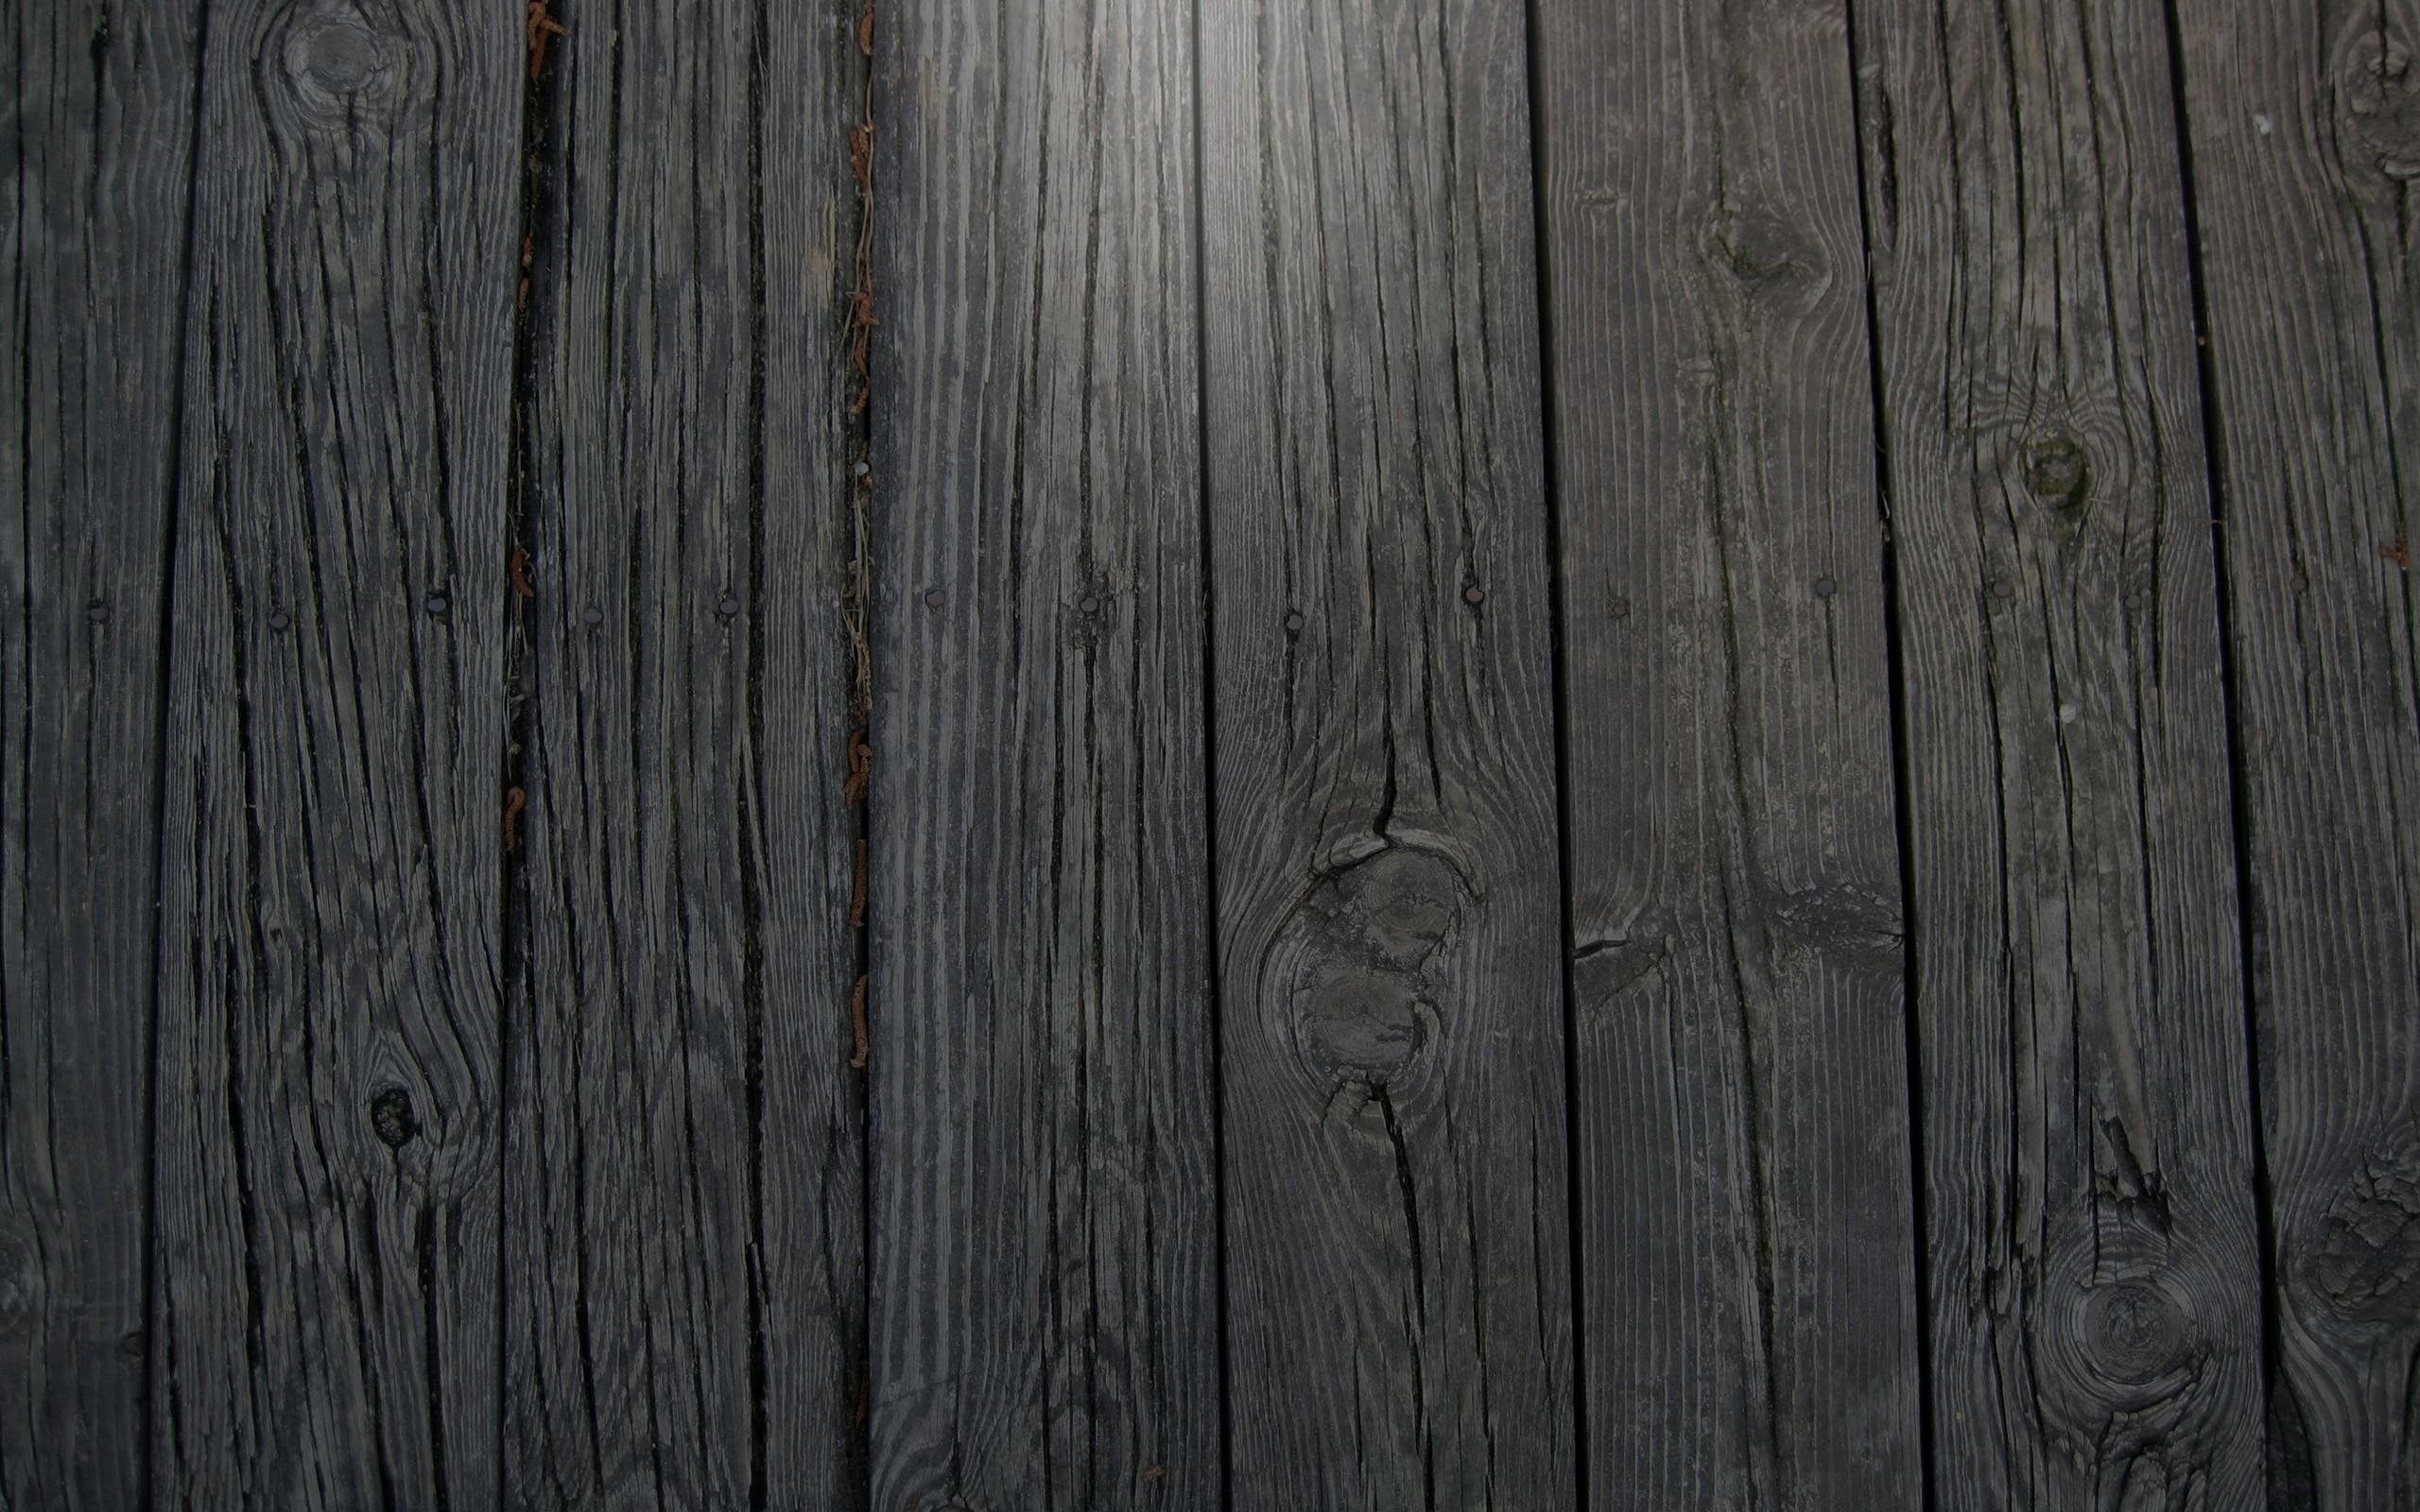 2560x1600 Desktop clipart wood